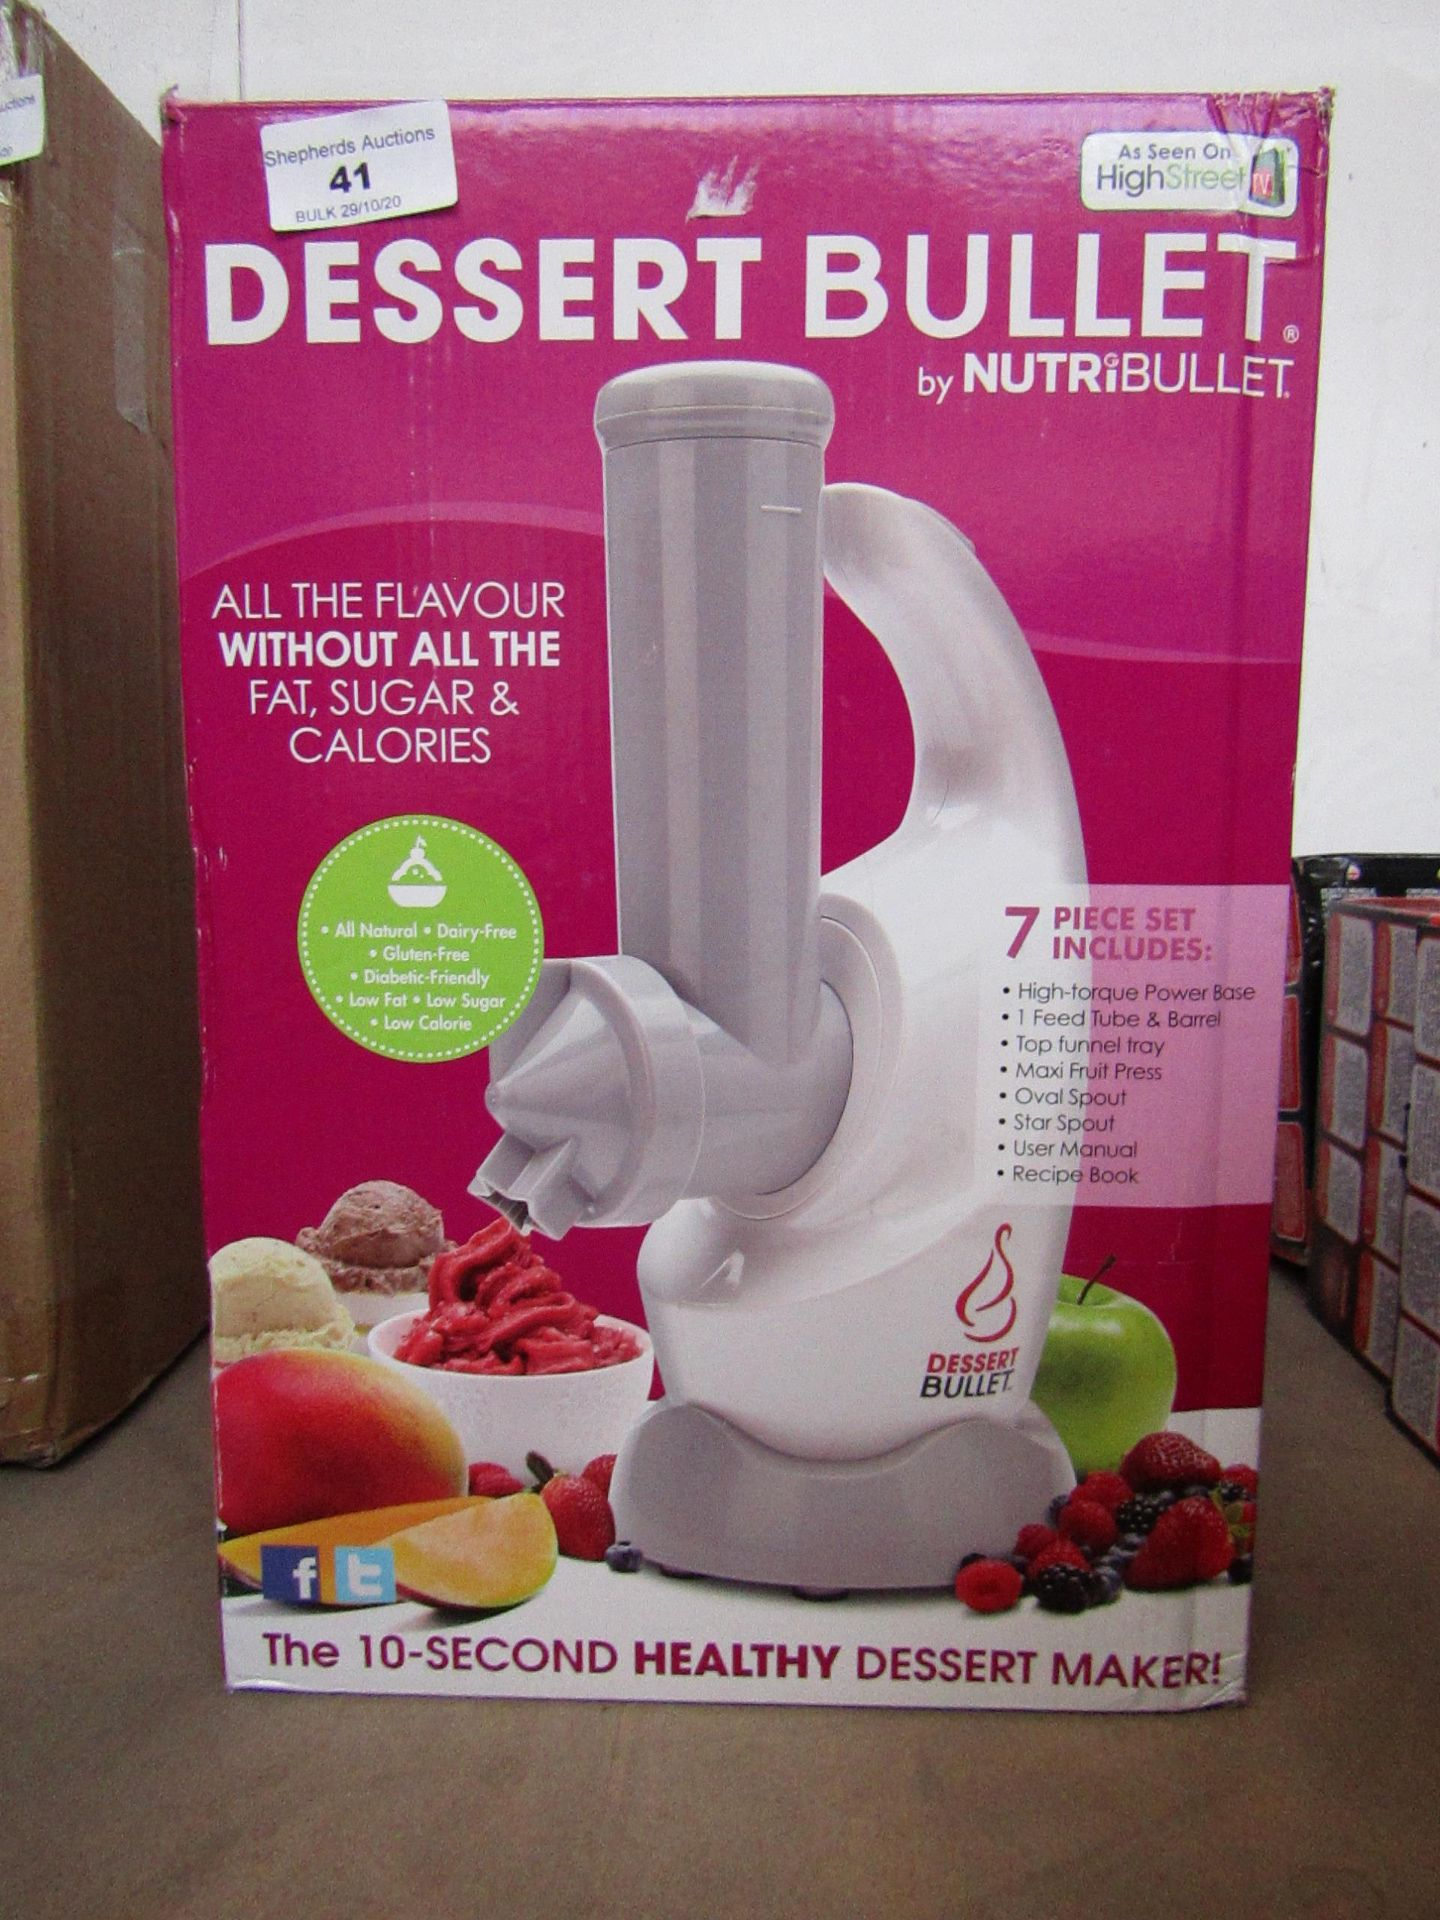   2X   DESSERT BULLET BY NUTRIBULLET   UNCHECKED AND BOXED   NO ONLINE RE-SALE   SKU